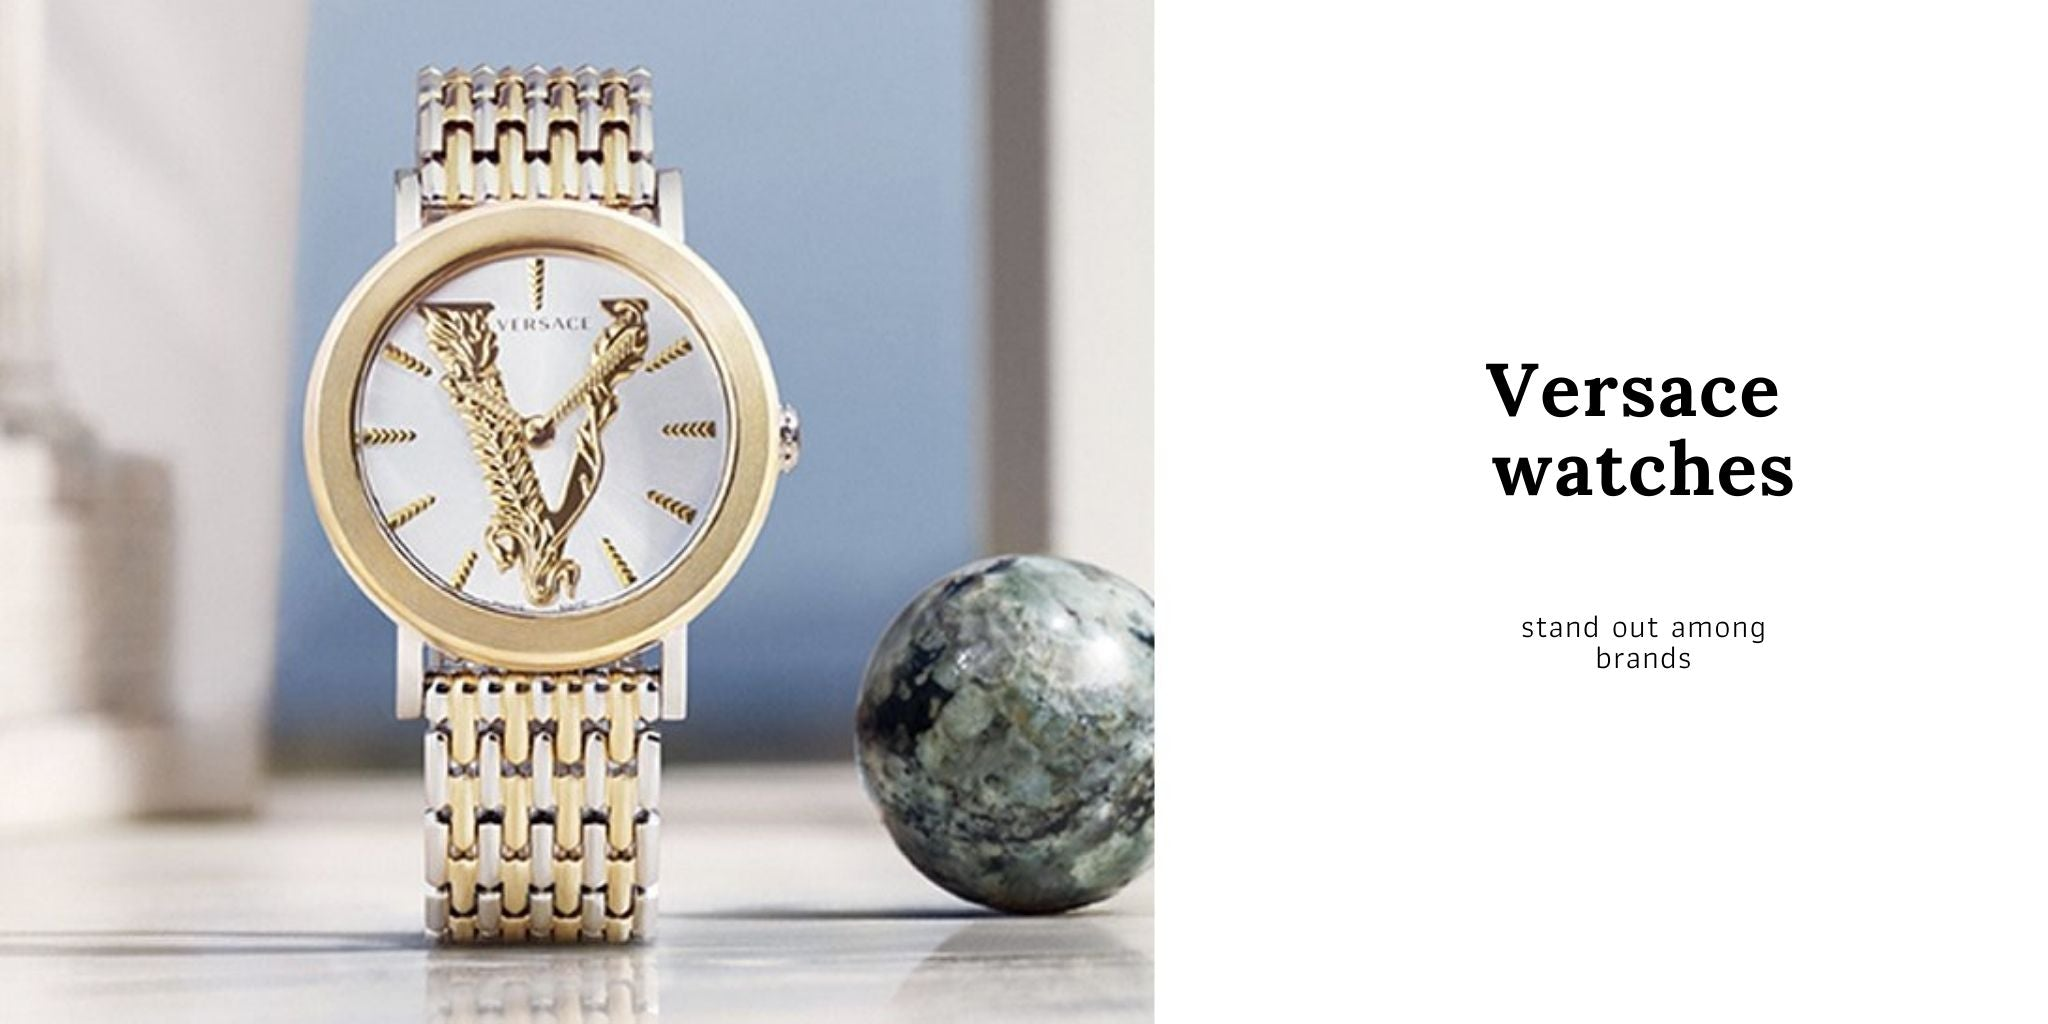 Versace watches stand out among brands